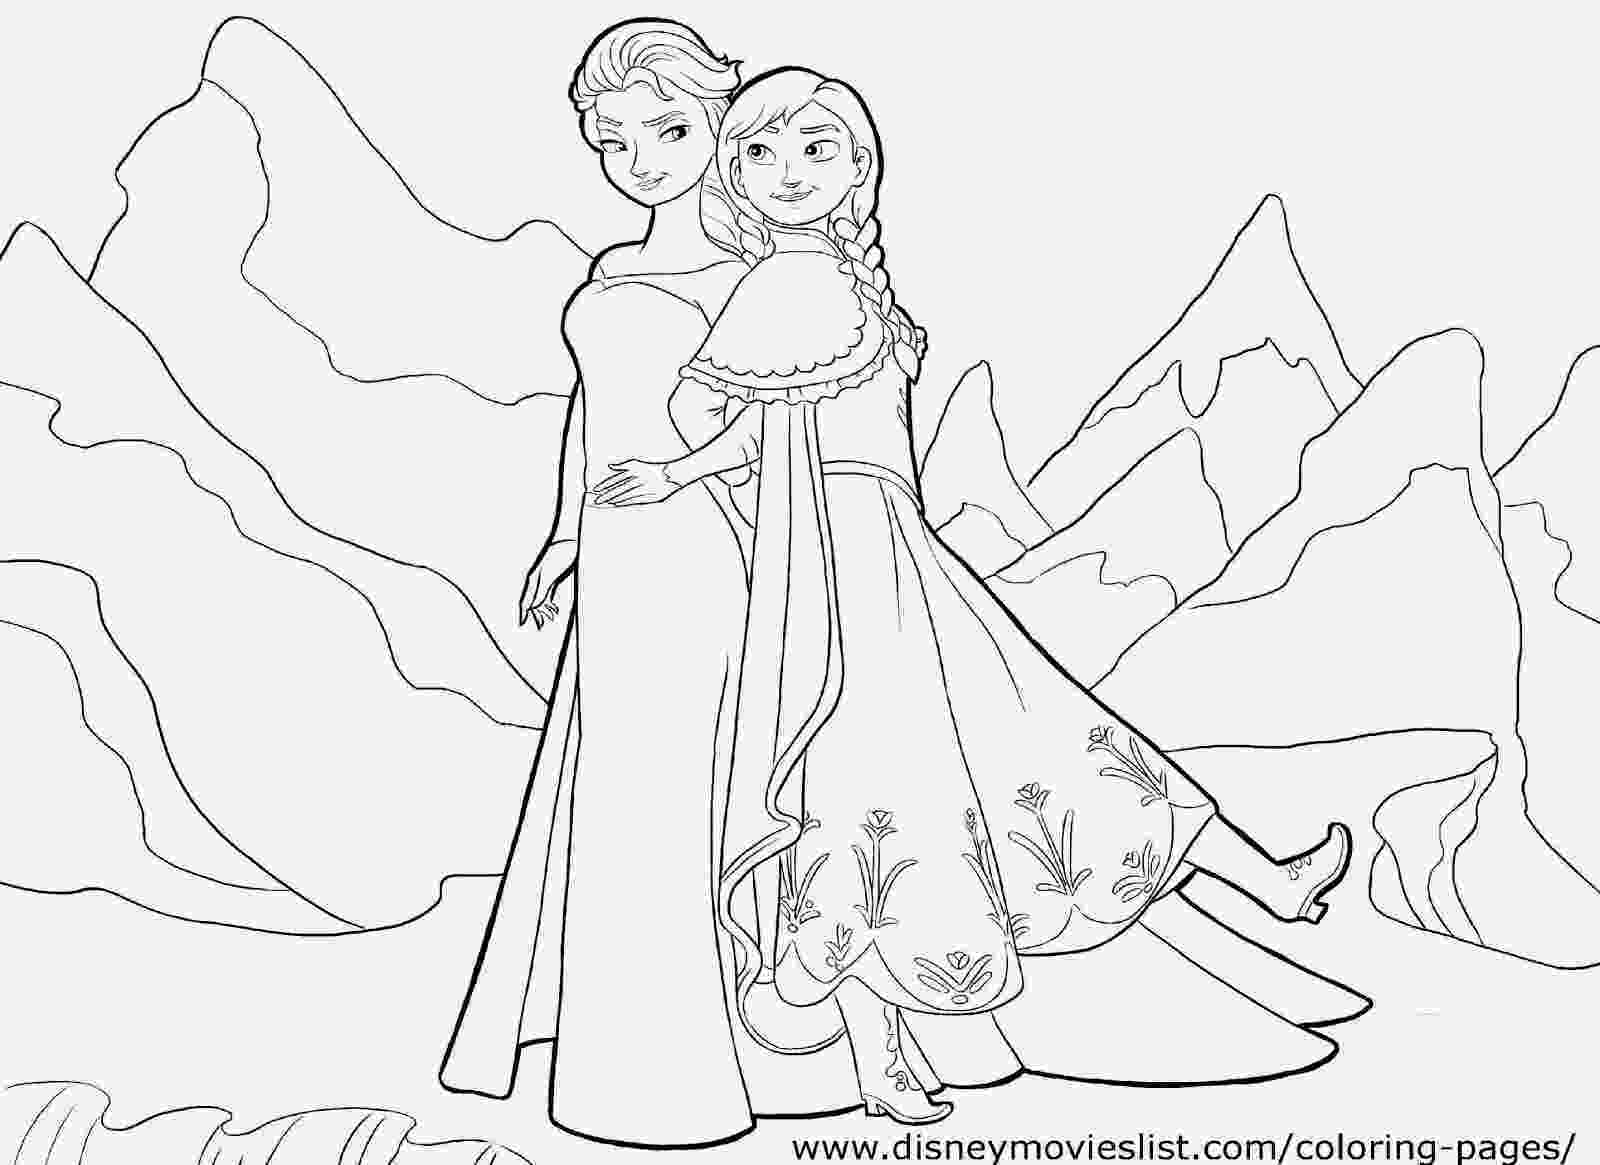 free coloring pages elsa and anna 12 free printable disney frozen coloring pages anna elsa pages free and coloring anna